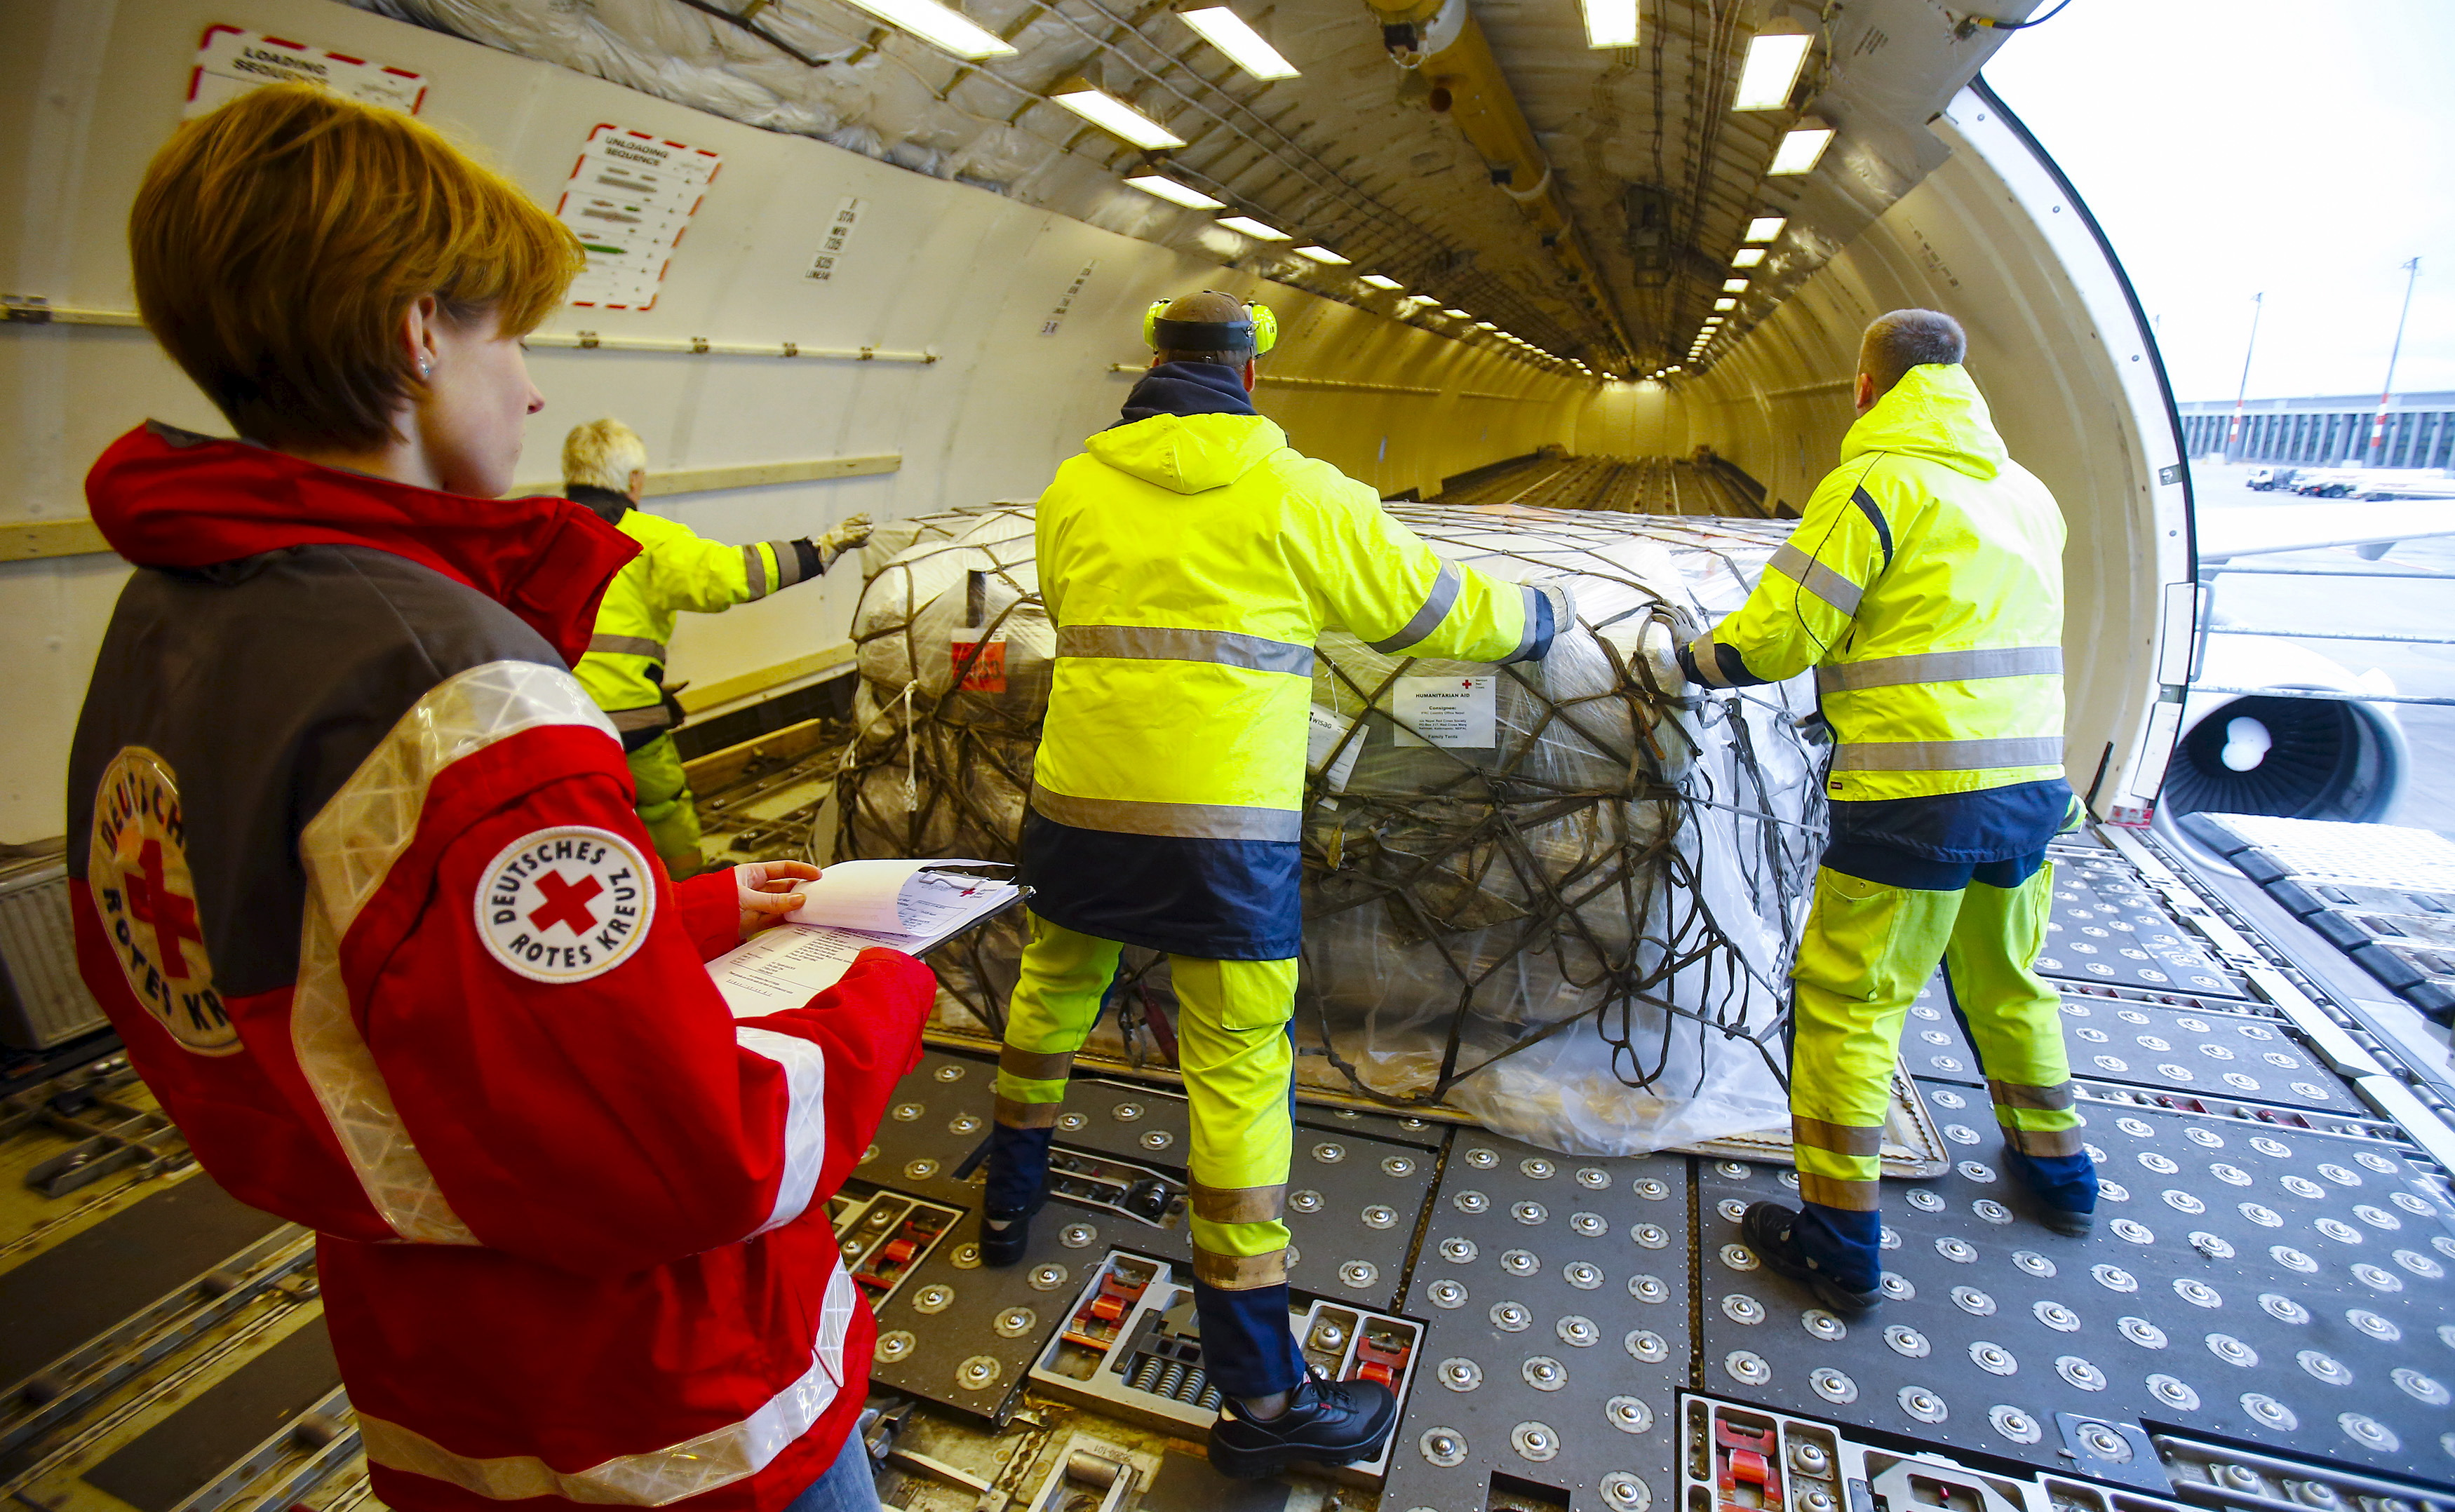 Workers load humanitarian aid from German Red Cross (DRK) for victims of the earthquake in Nepal, into an aircraft at Schoenefeld airport outside Berlin April 27, 2015.